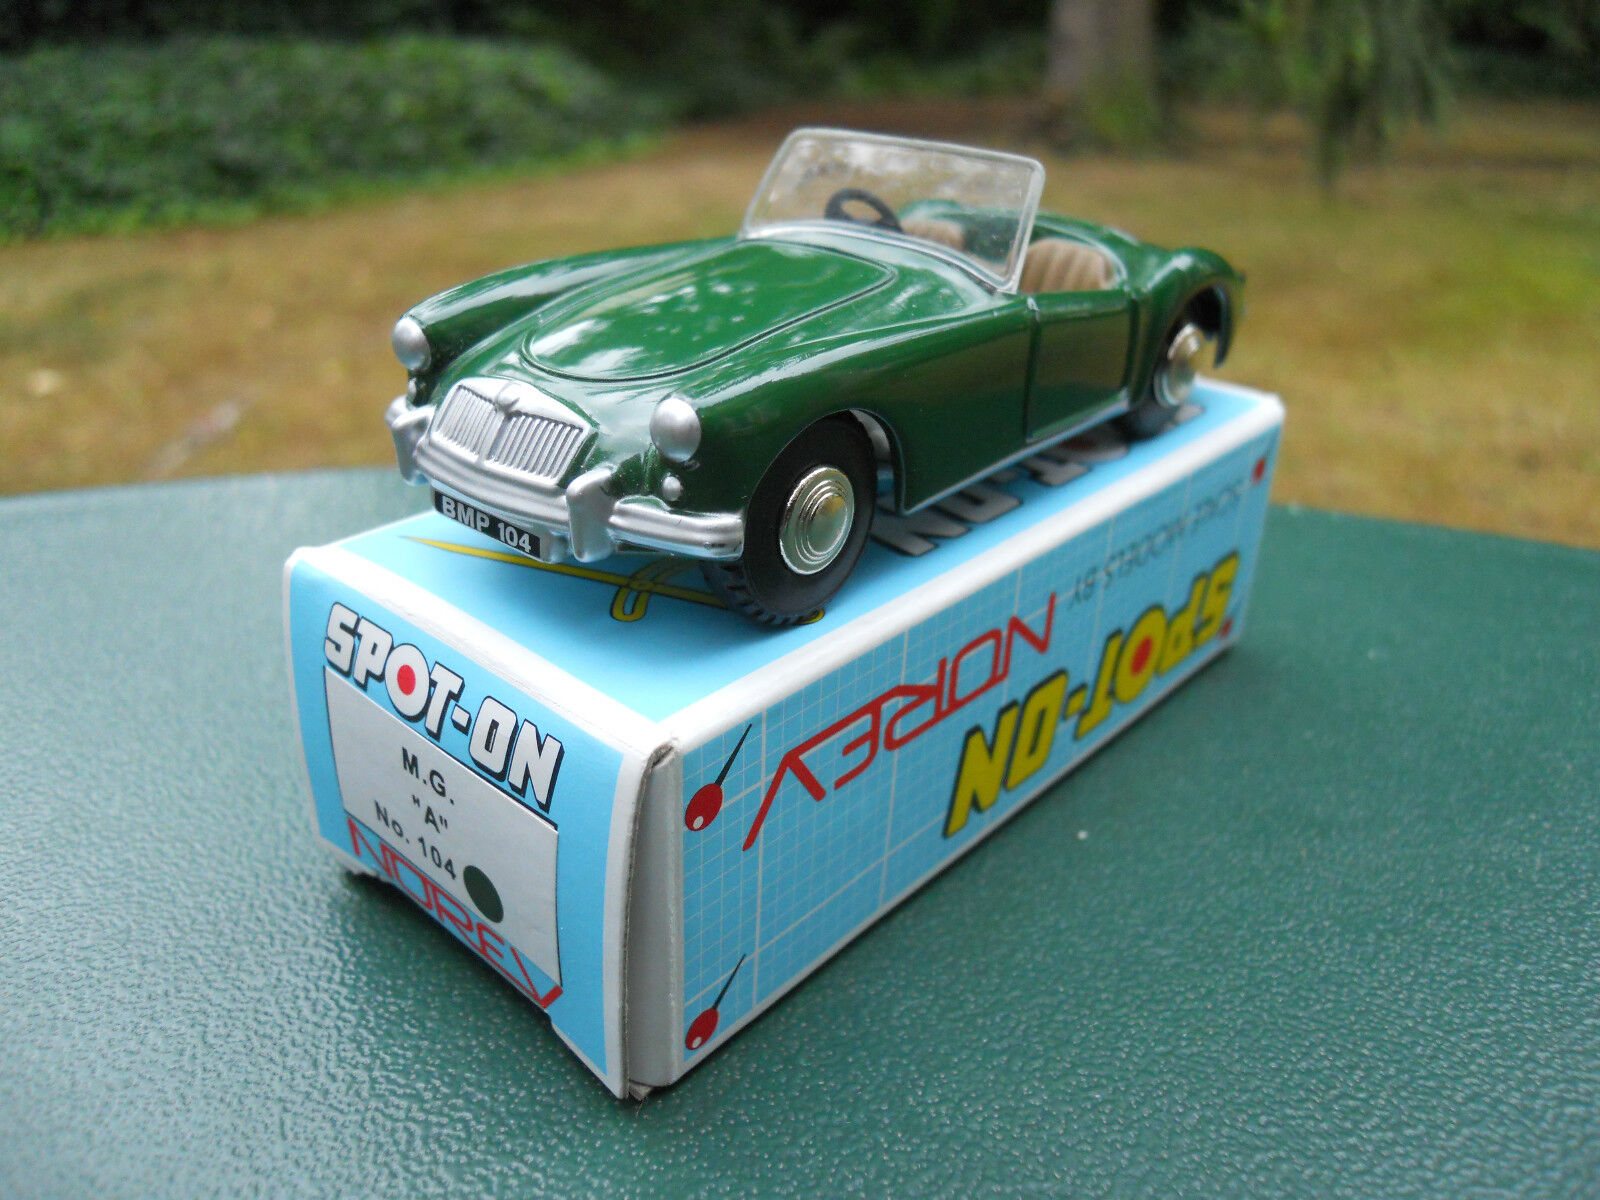 NOREV SPOT-ON N° 104 MG   A   MINT IN BOX